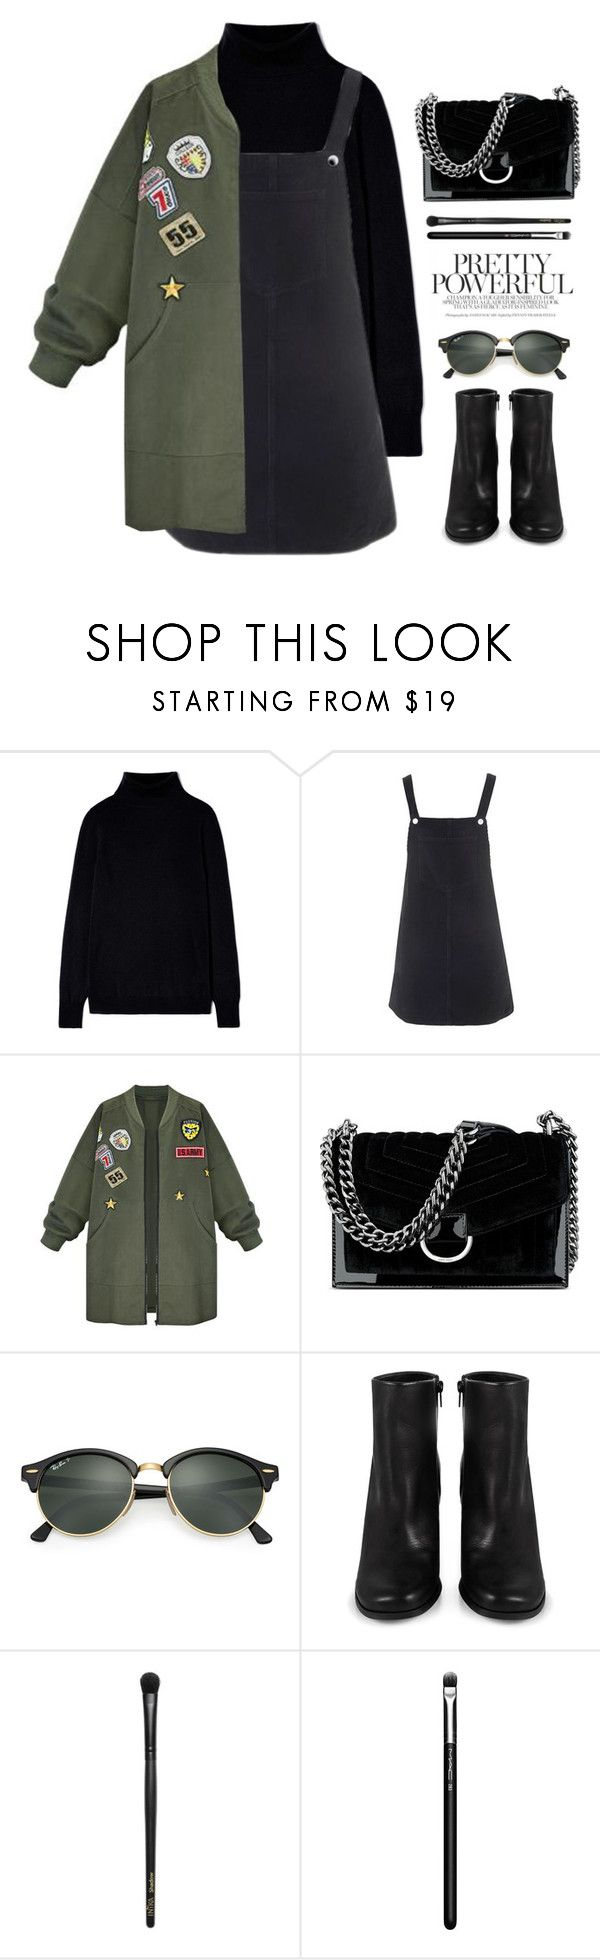 """Untitled #433"" by ino-6283 ❤ liked on Polyvore featuring Topshop, WithChic, Nine West, Ray-Ban, Miista, INIKA and MAC Cosmetics"